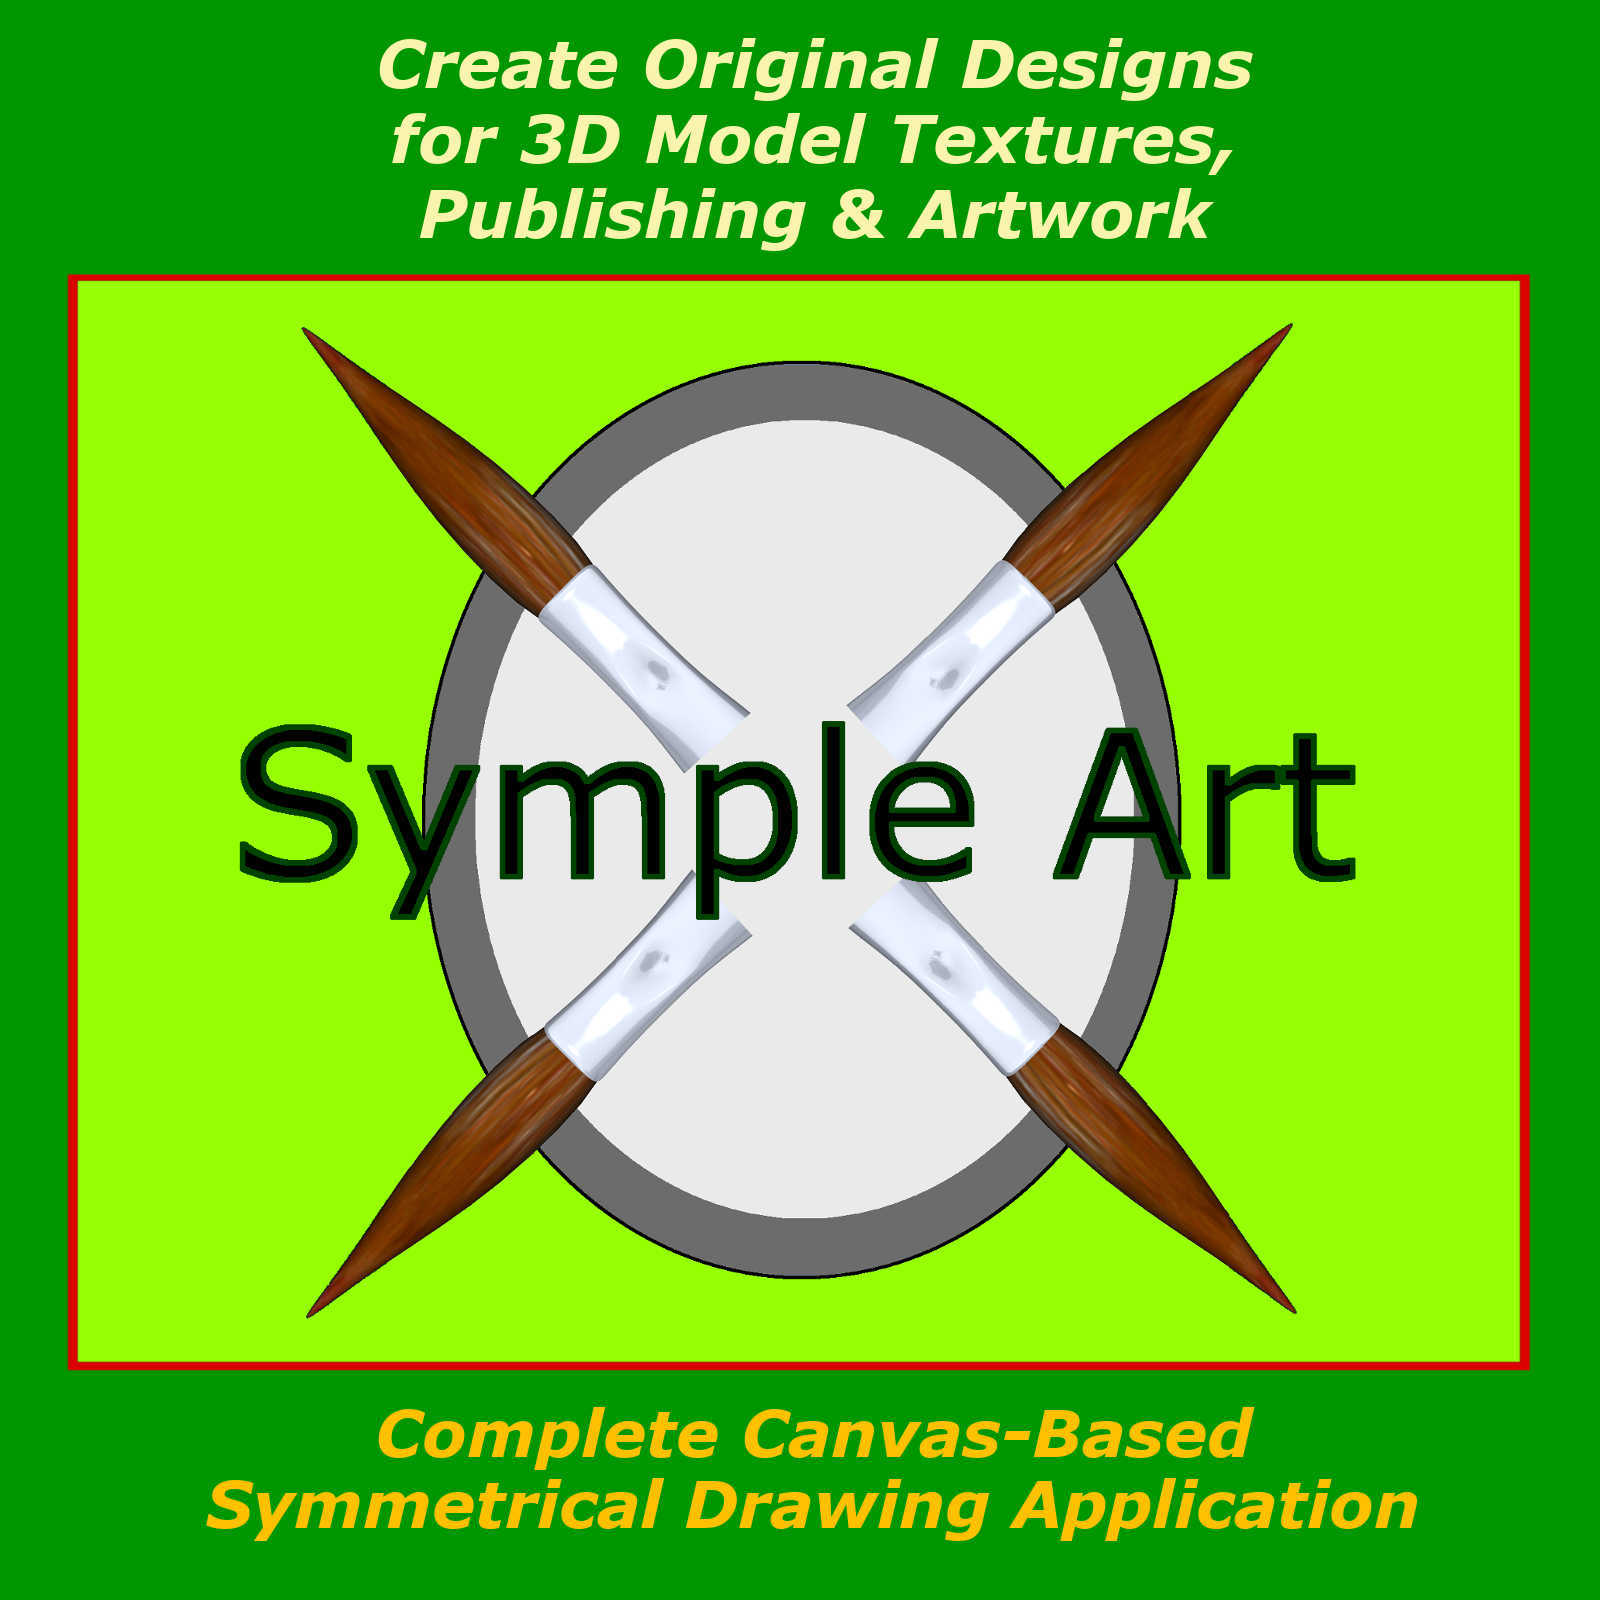 SYMPLE ART for Windows, Drawing Fun for Everyone